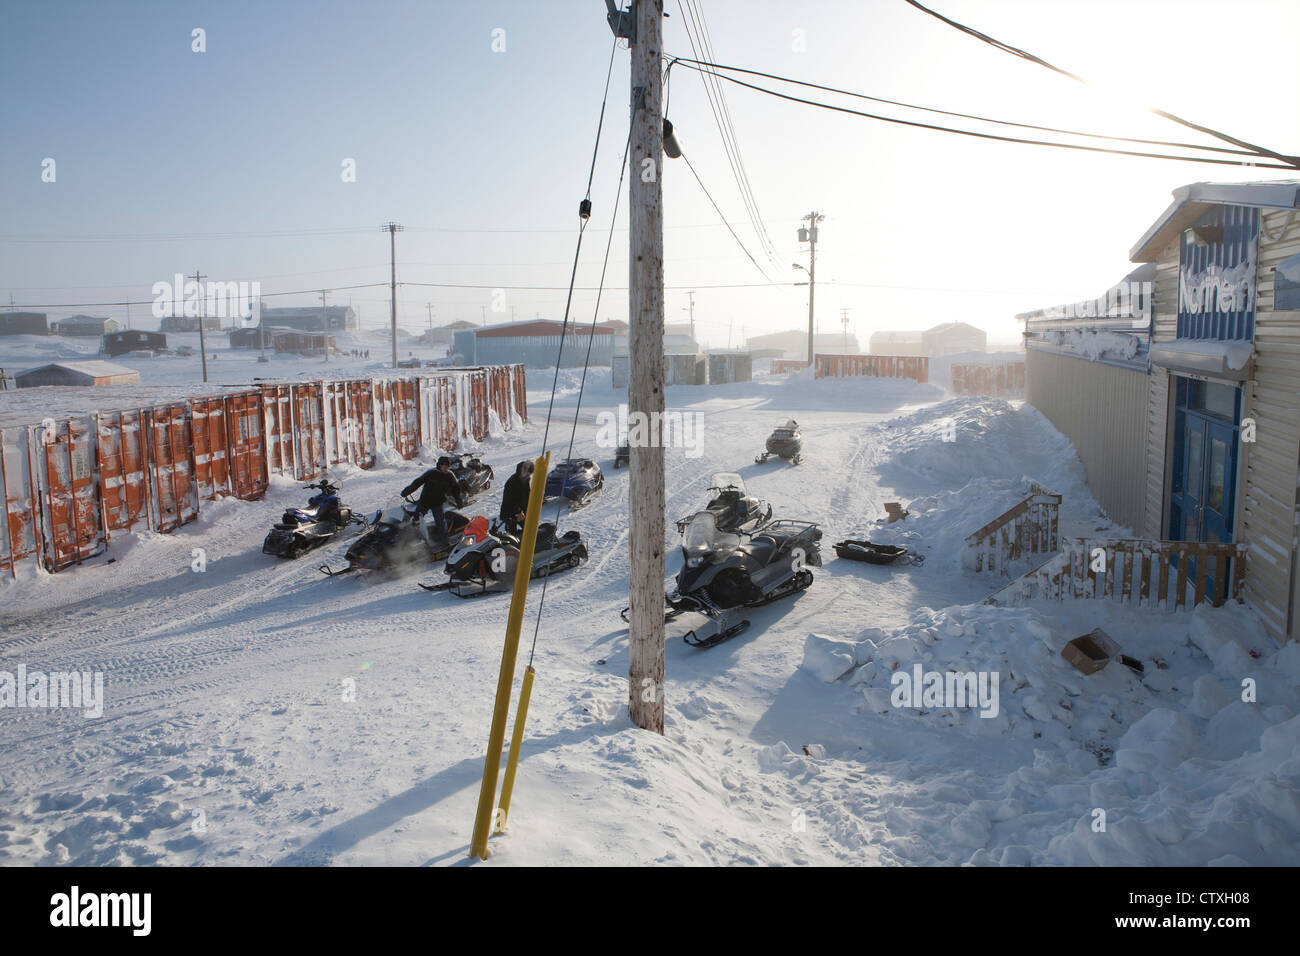 snow scooter at the north pole - Stock Image